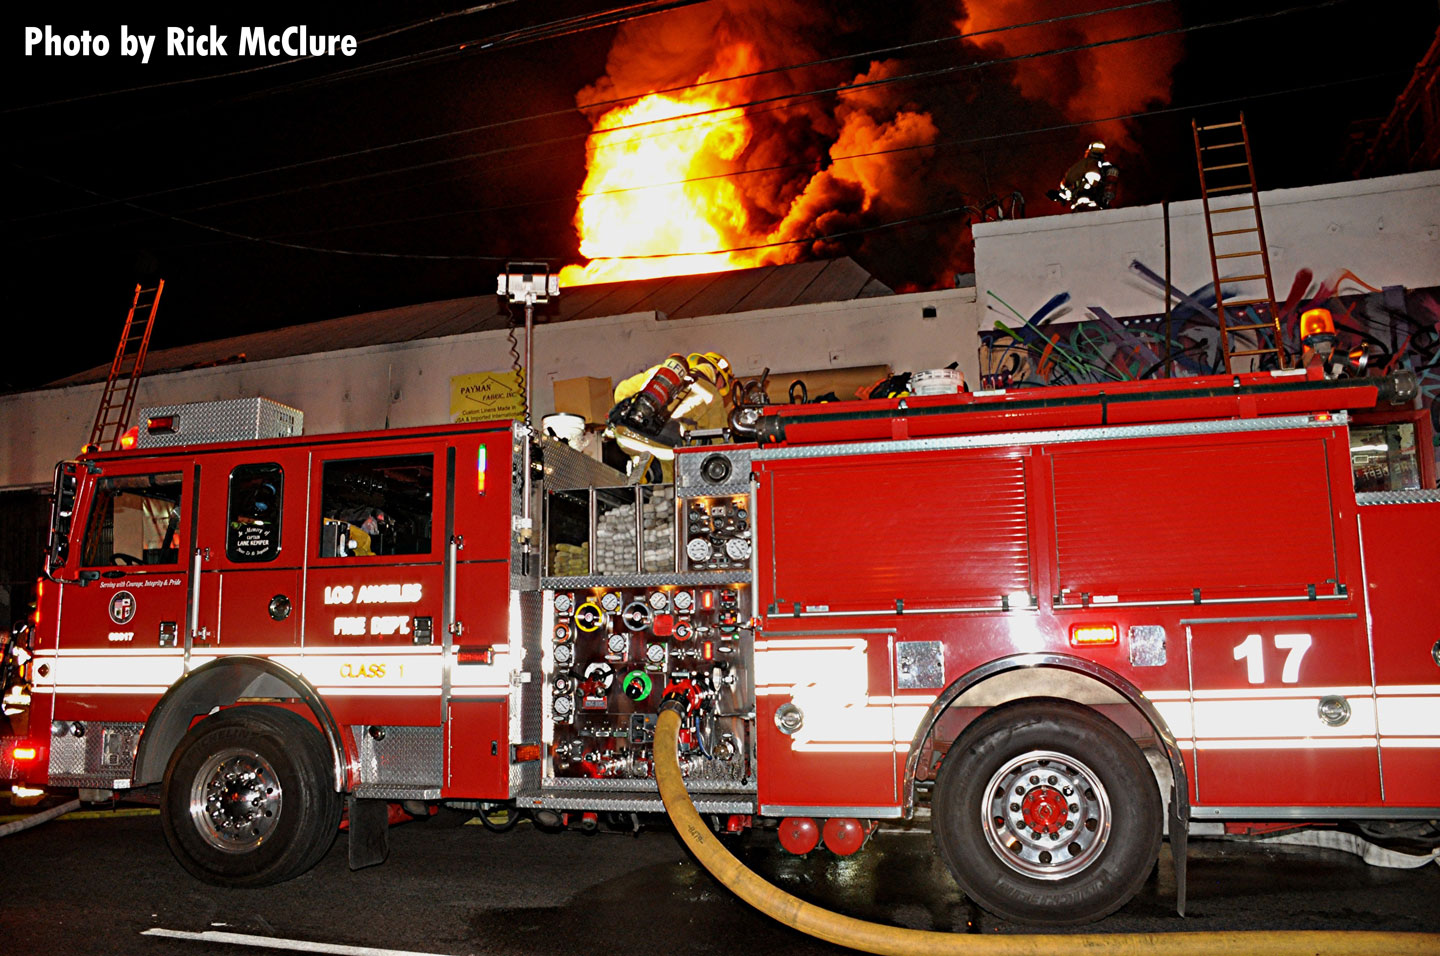 Flames shoot through the roof of the building. An LAFD pumper in the foreground.